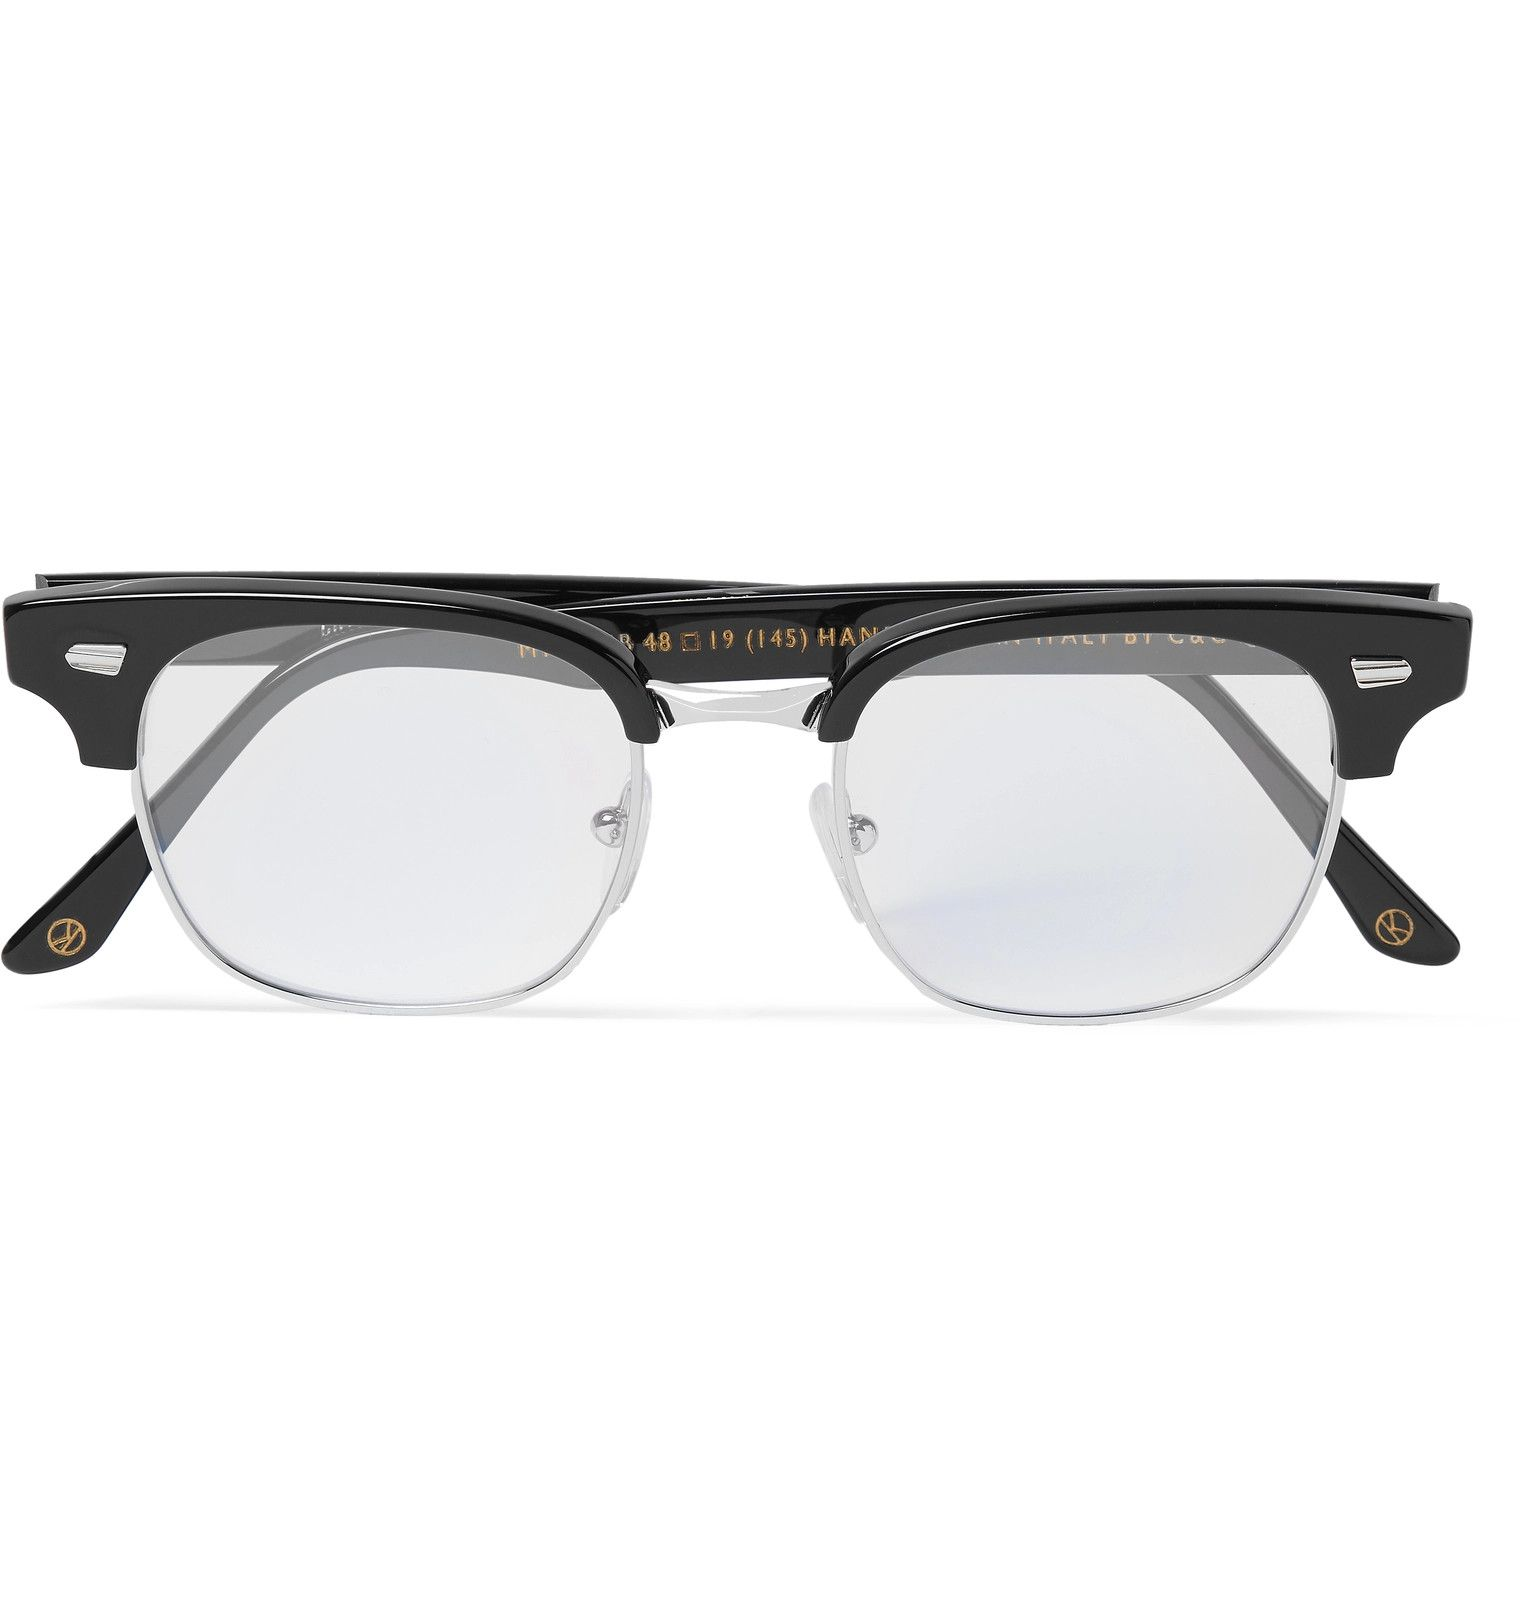 24ac22ac0f Kingsman - + Cutler and Gross Merlin s Square-Frame Acetate and Silver-Tone Optical  Glasses